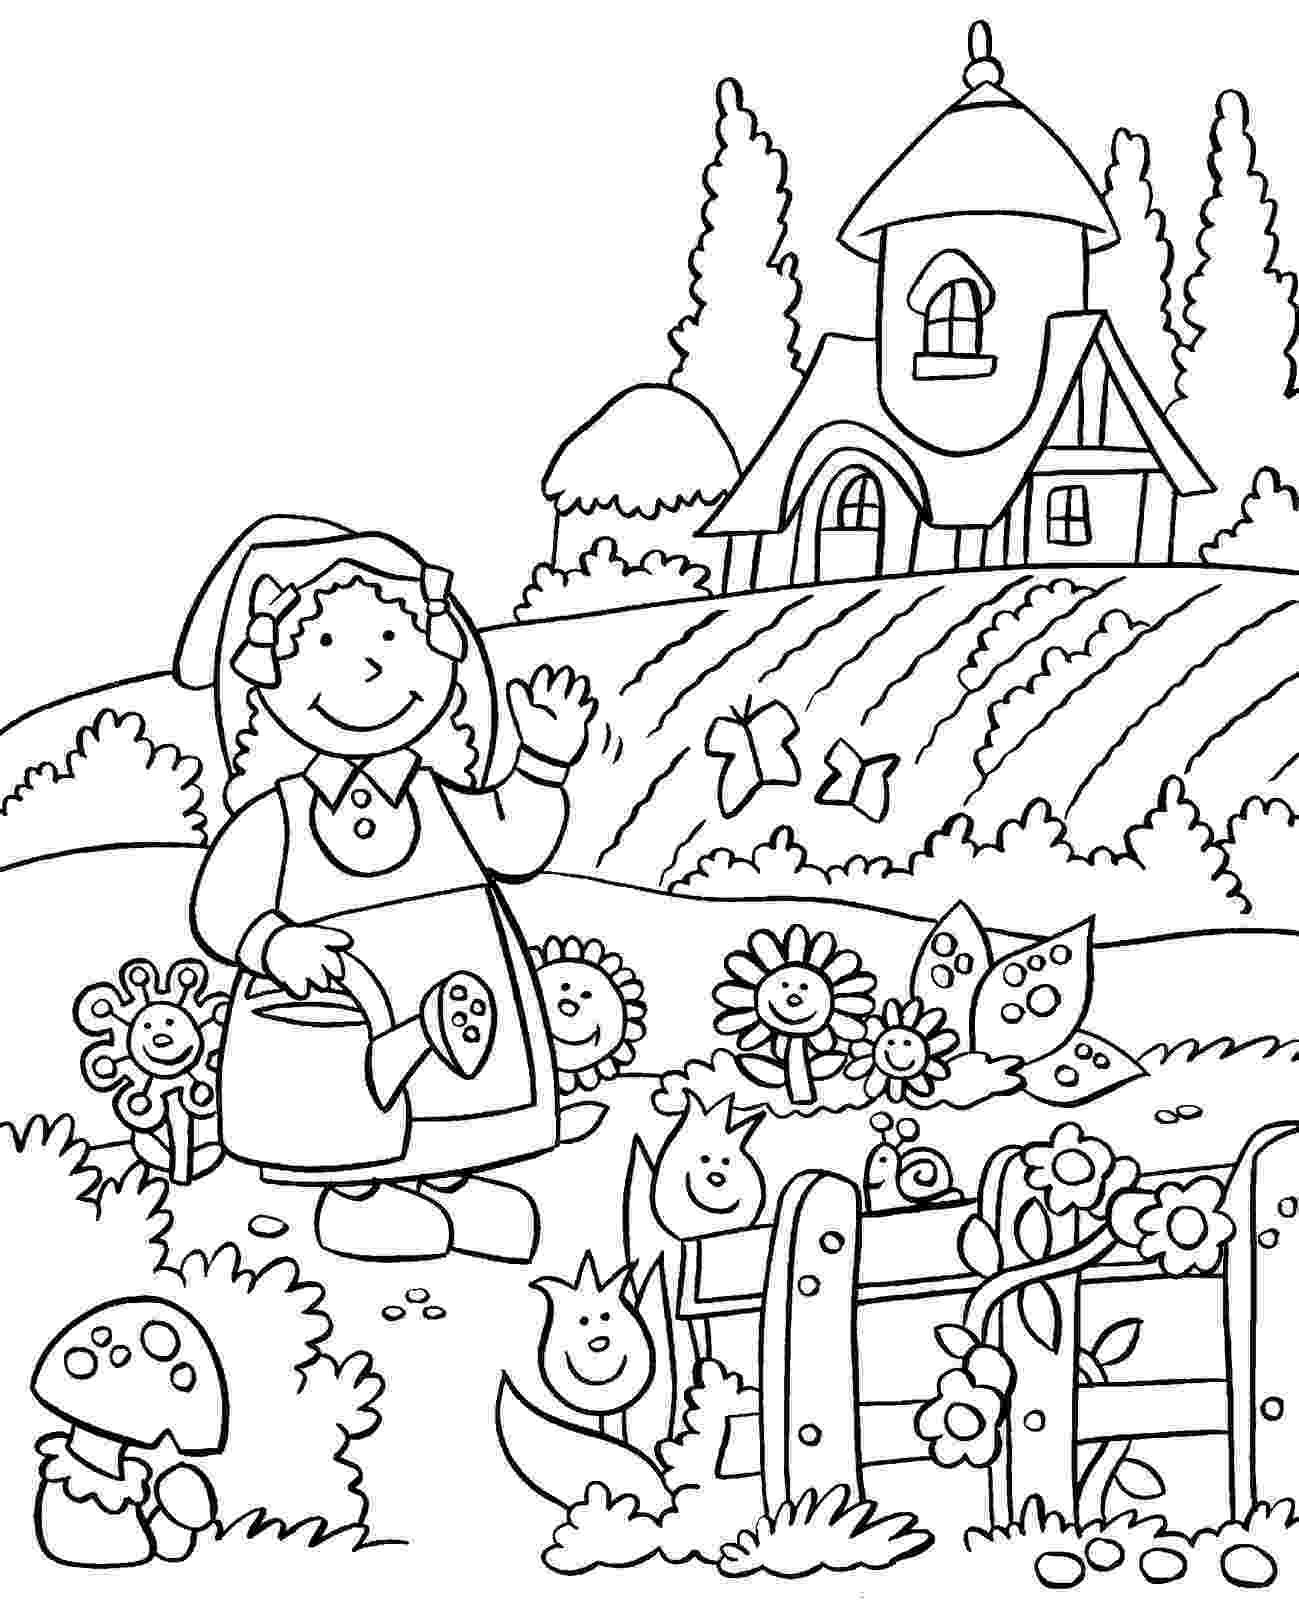 garden pictures to color flower garden coloring pages to download and print for free to color pictures garden